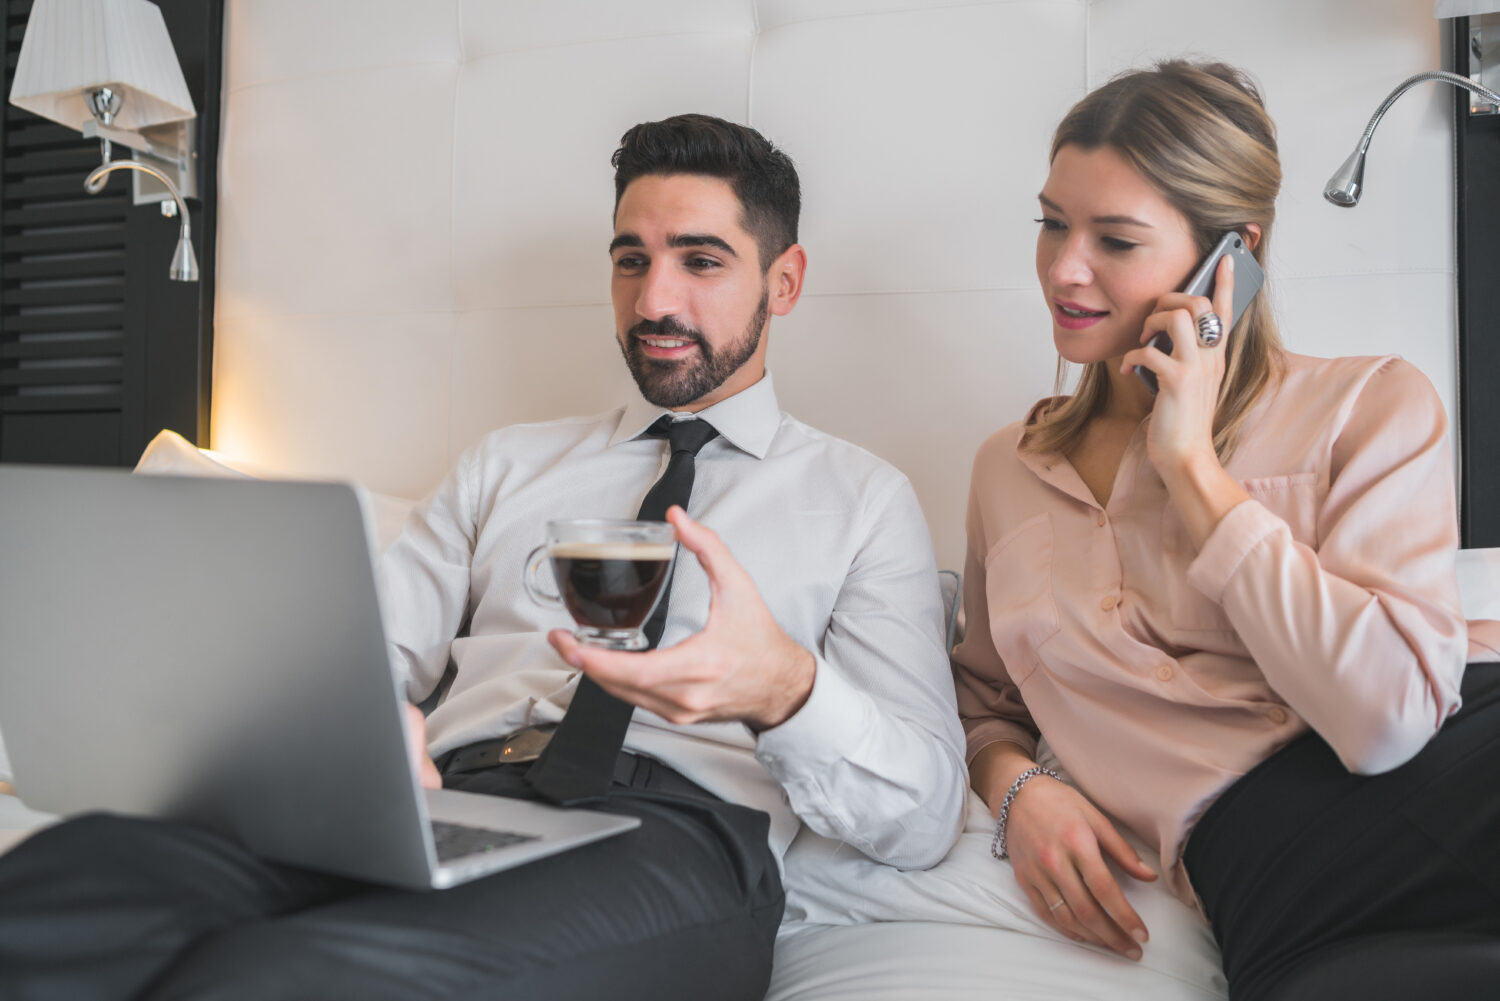 two young business people sitting on a bed and looking at a laptop together